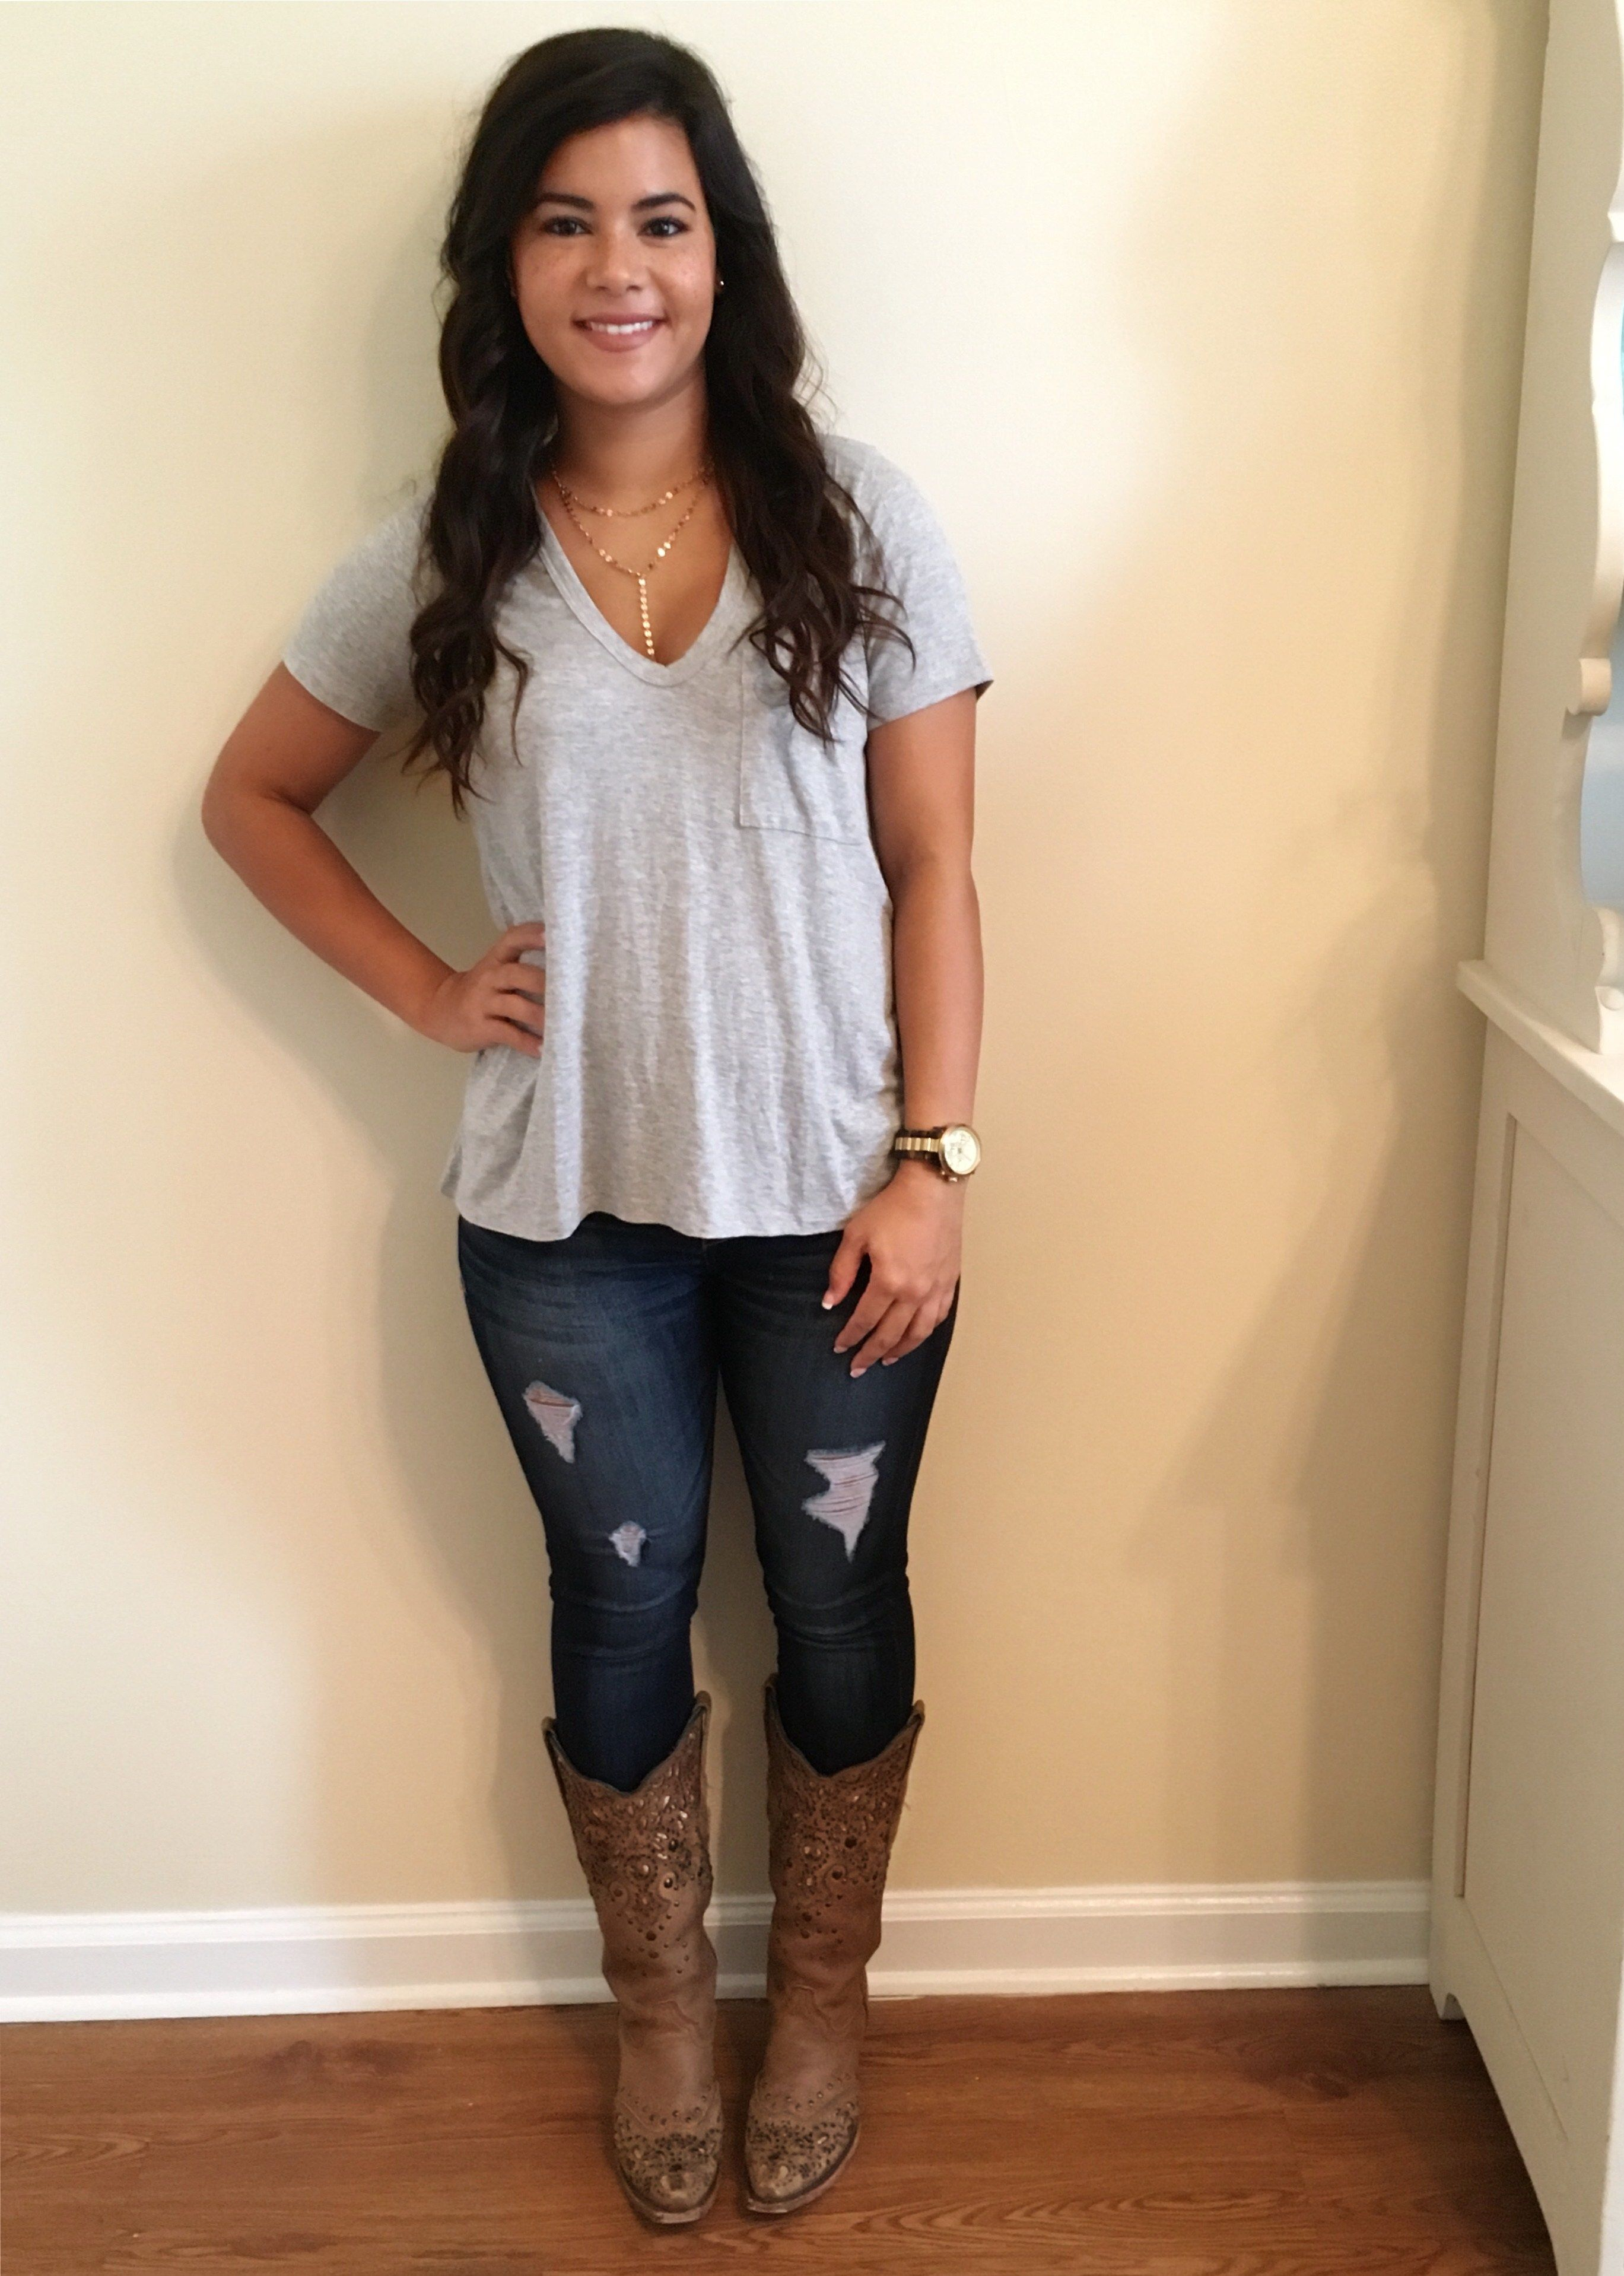 Cowgirl boots outfit